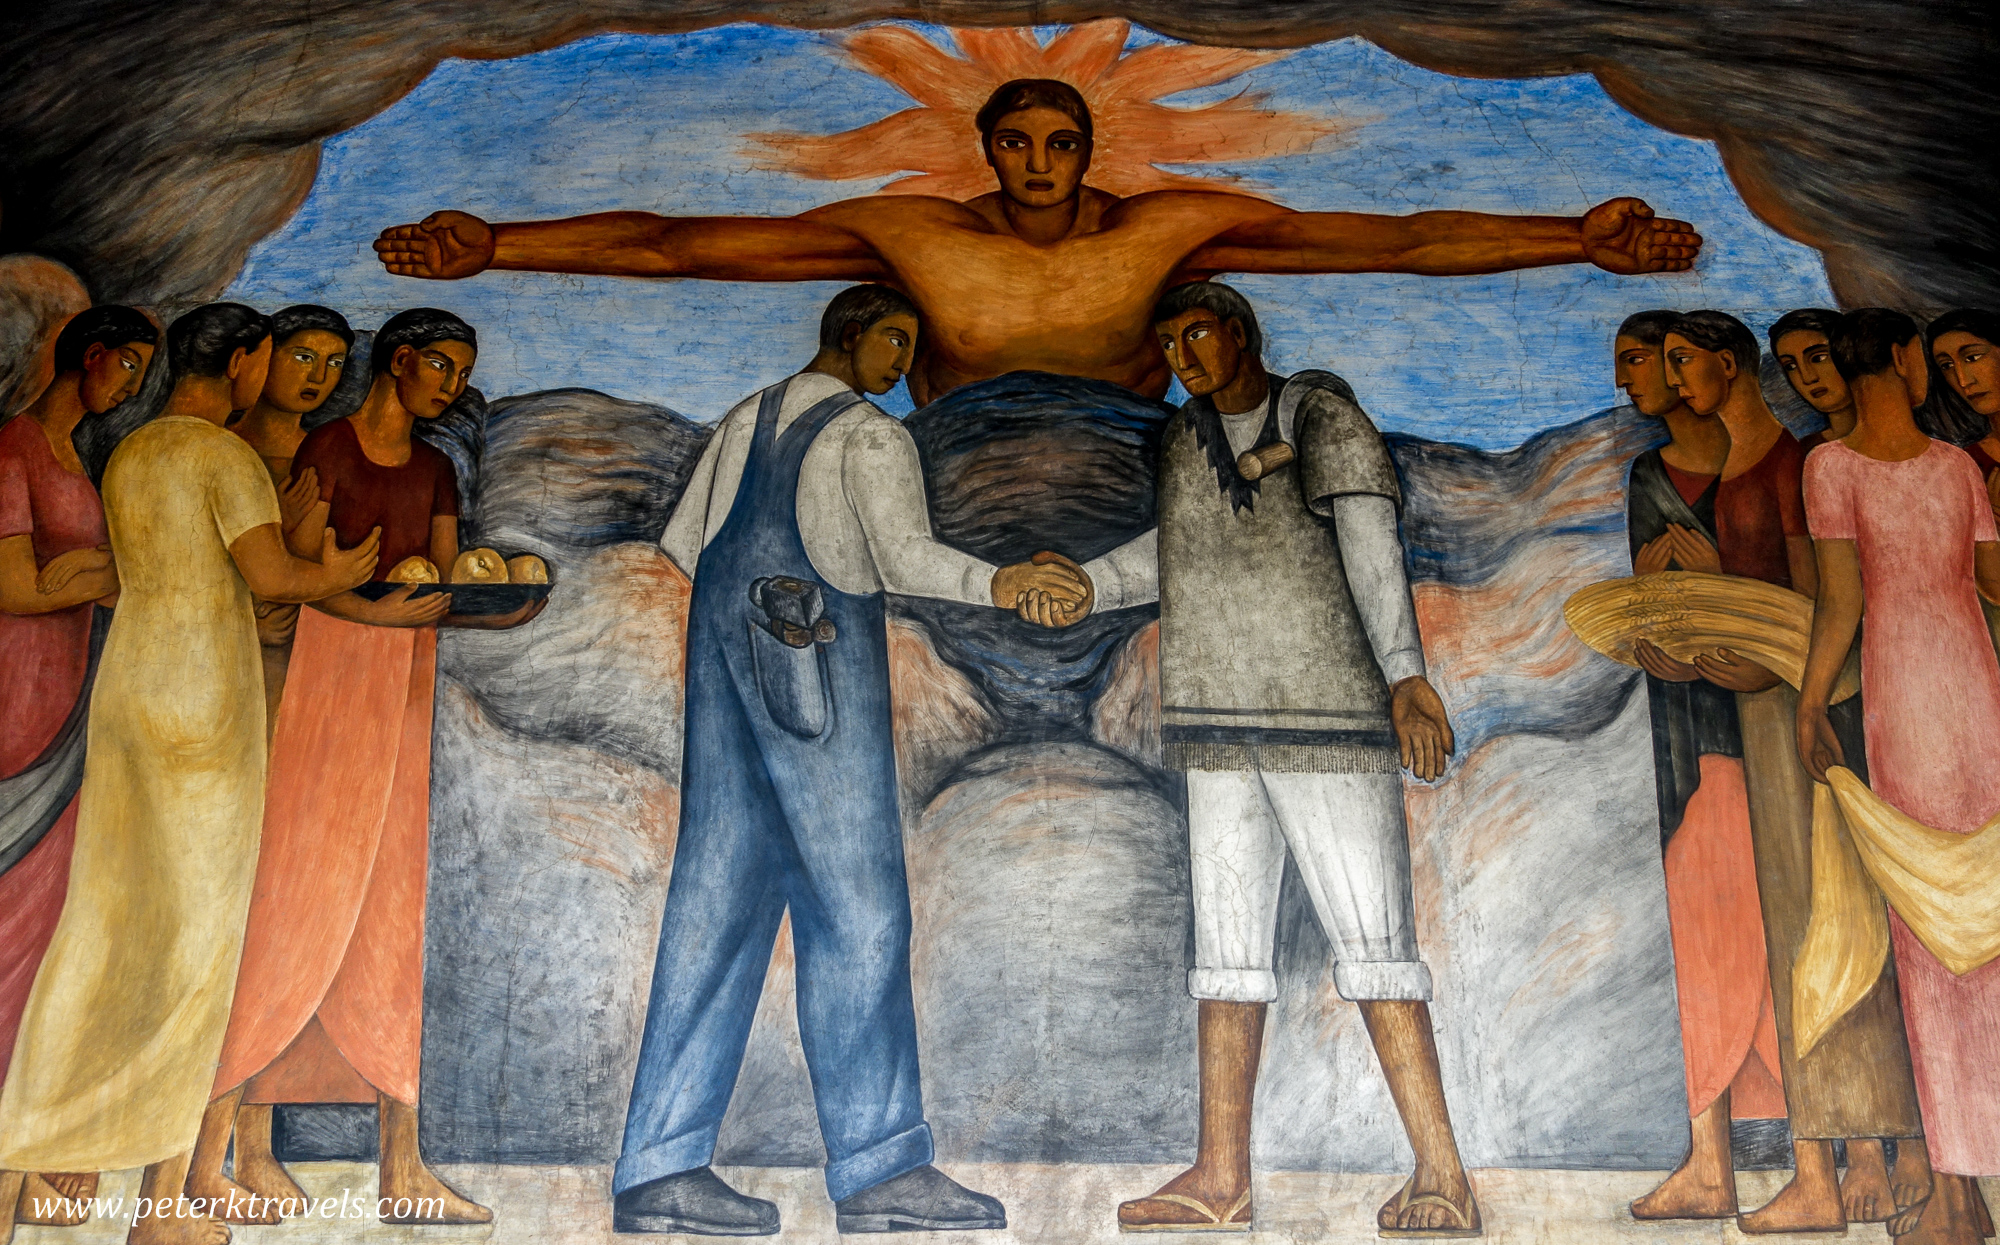 Discovering diego peter 39 s travel blog for Diego rivera mural